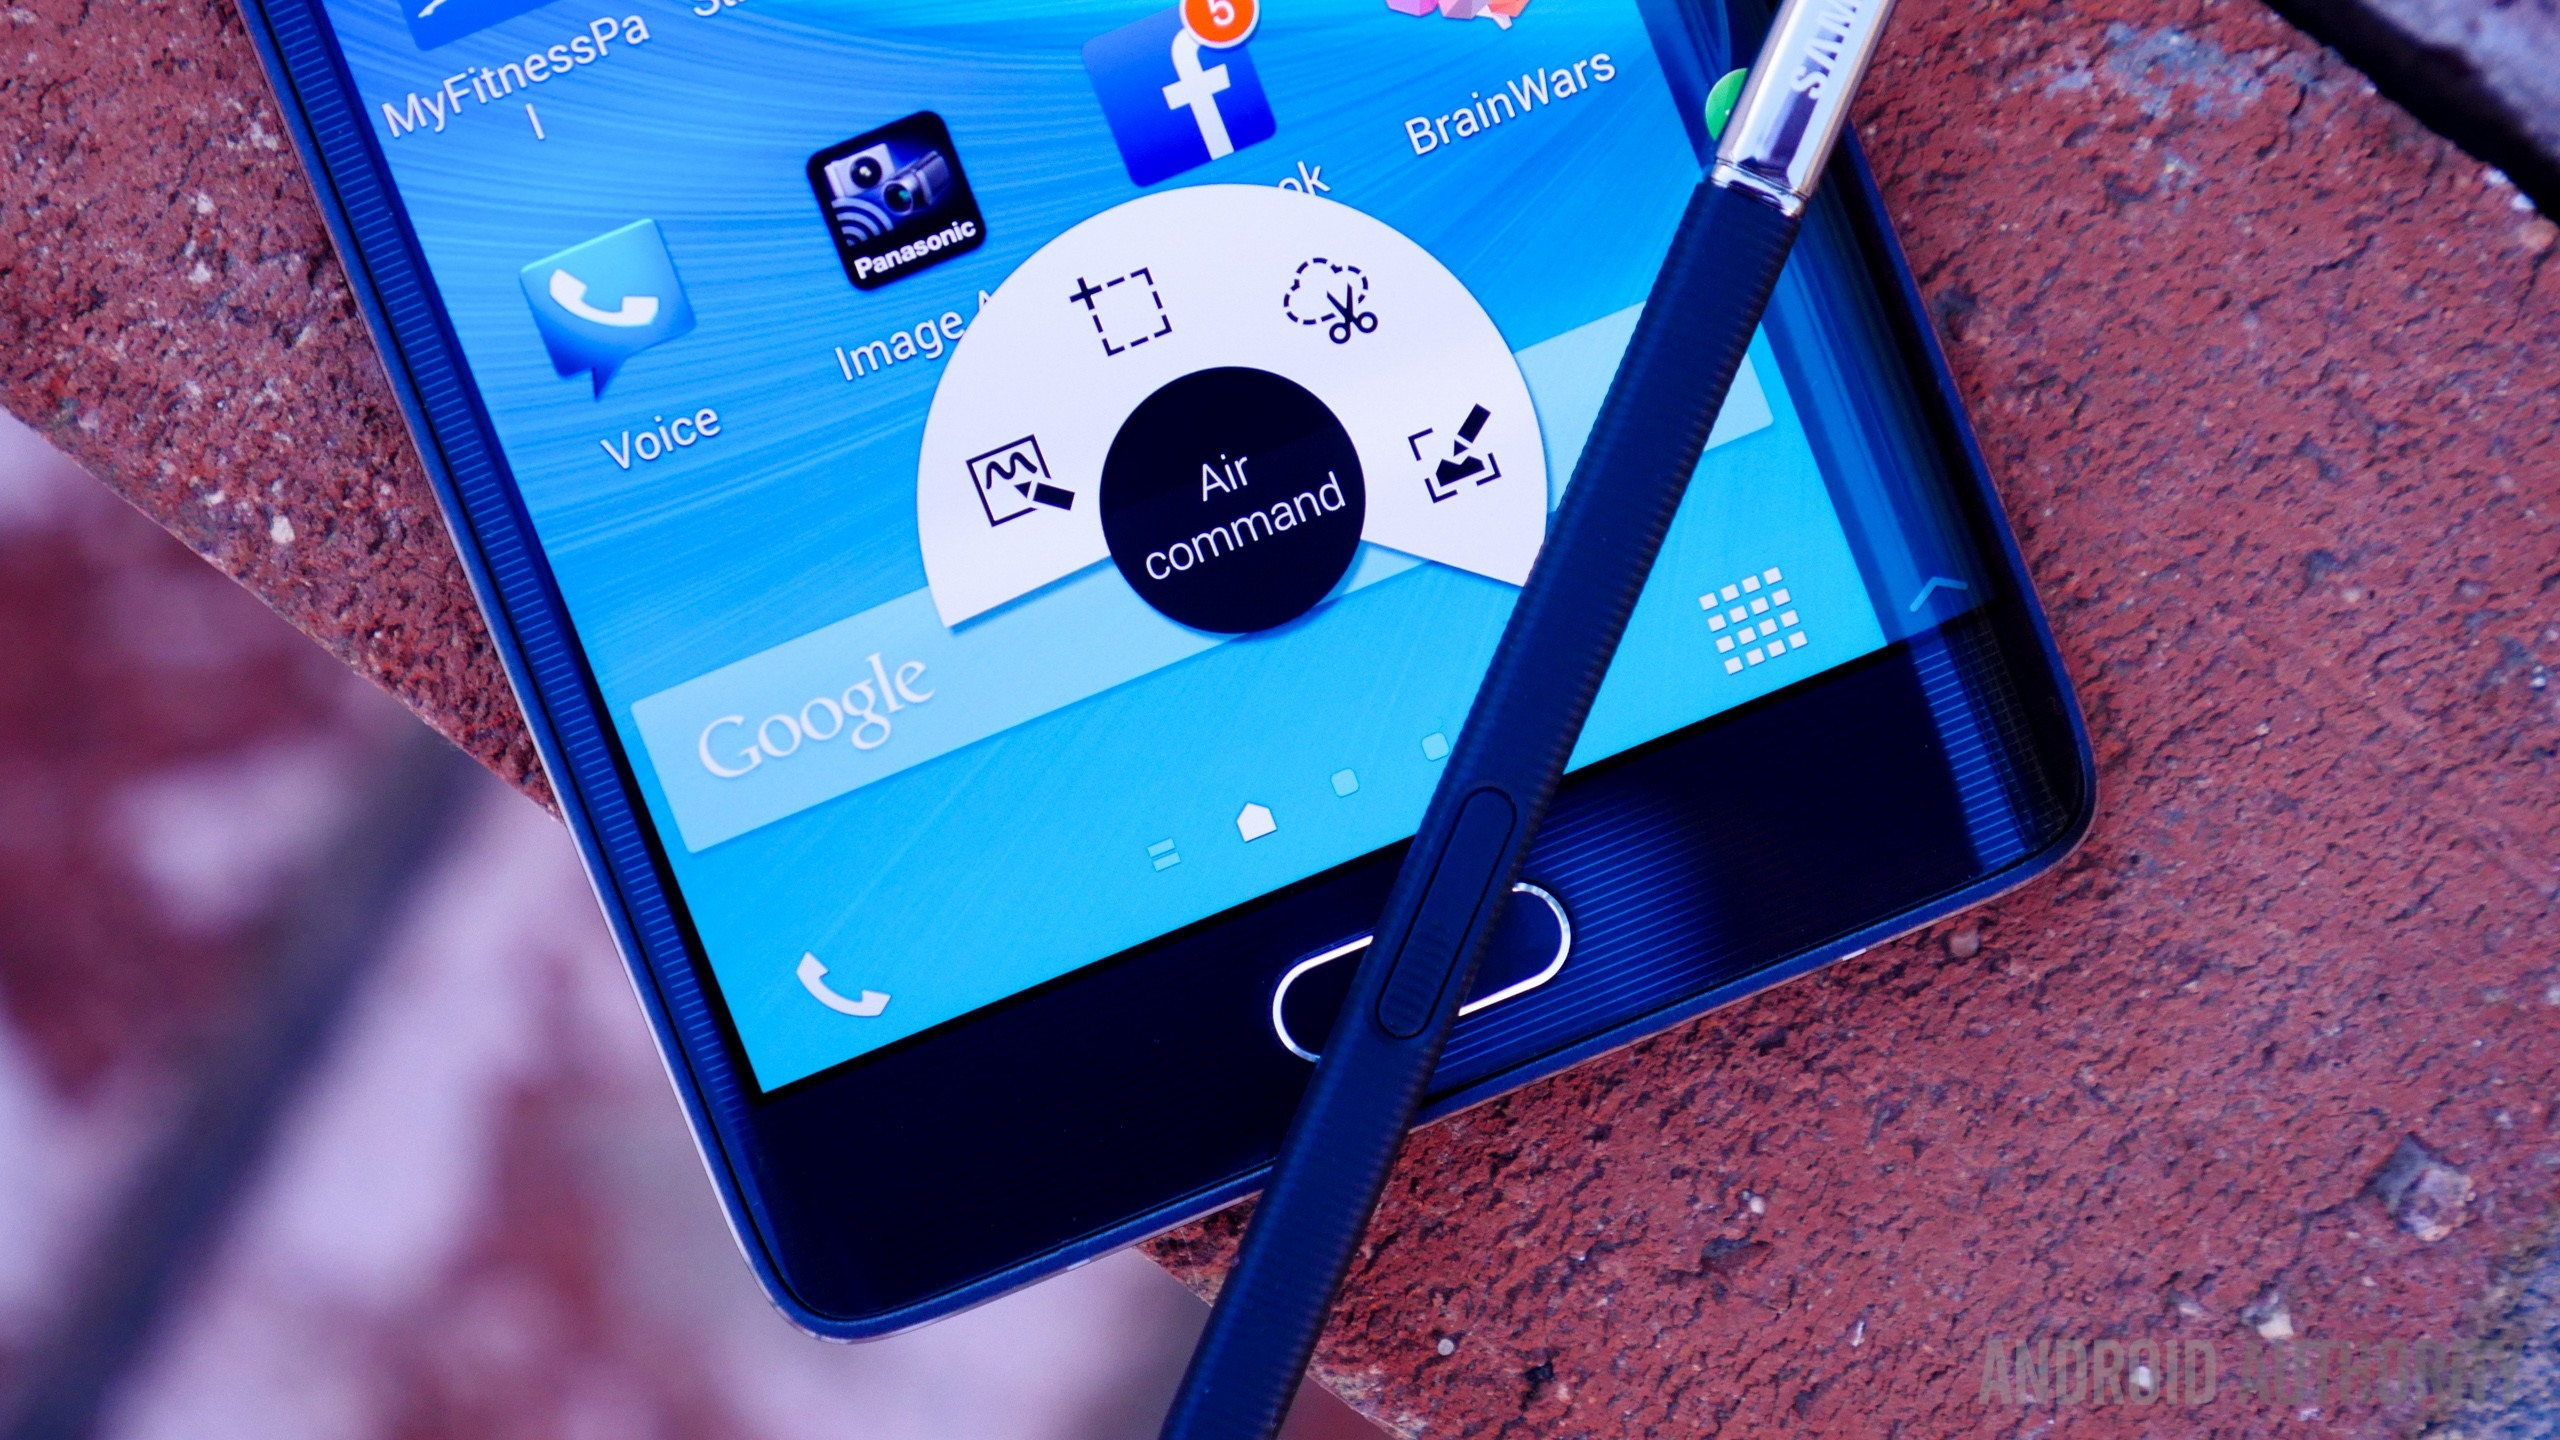 samsung galaxy note edge review aa (7 of 26)